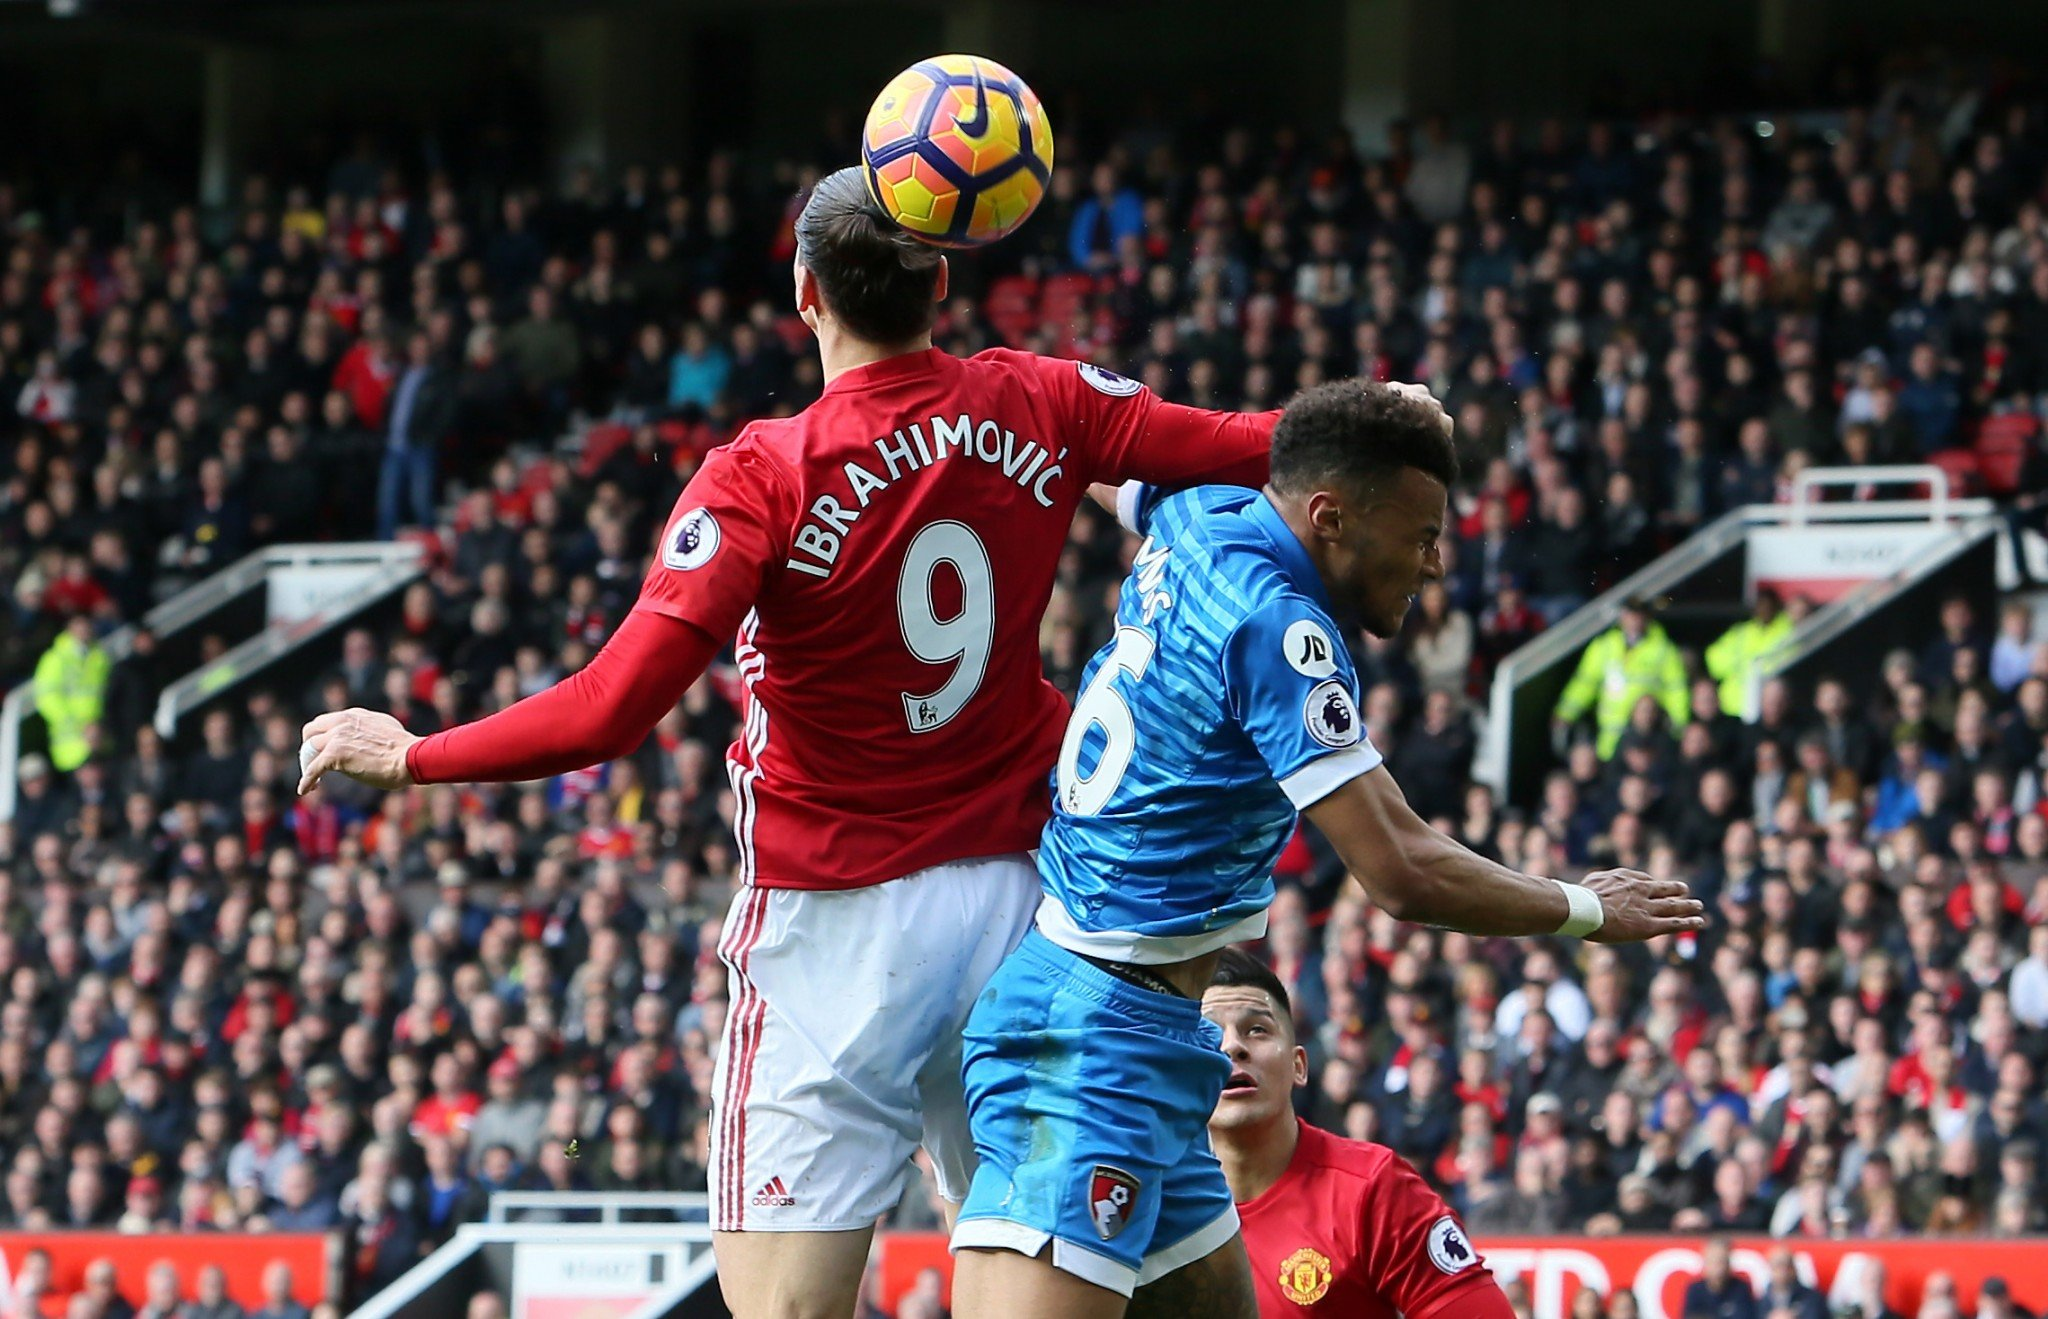 Zlatan ibrahimovic insists he was just protecting himself against Tyrone Mings